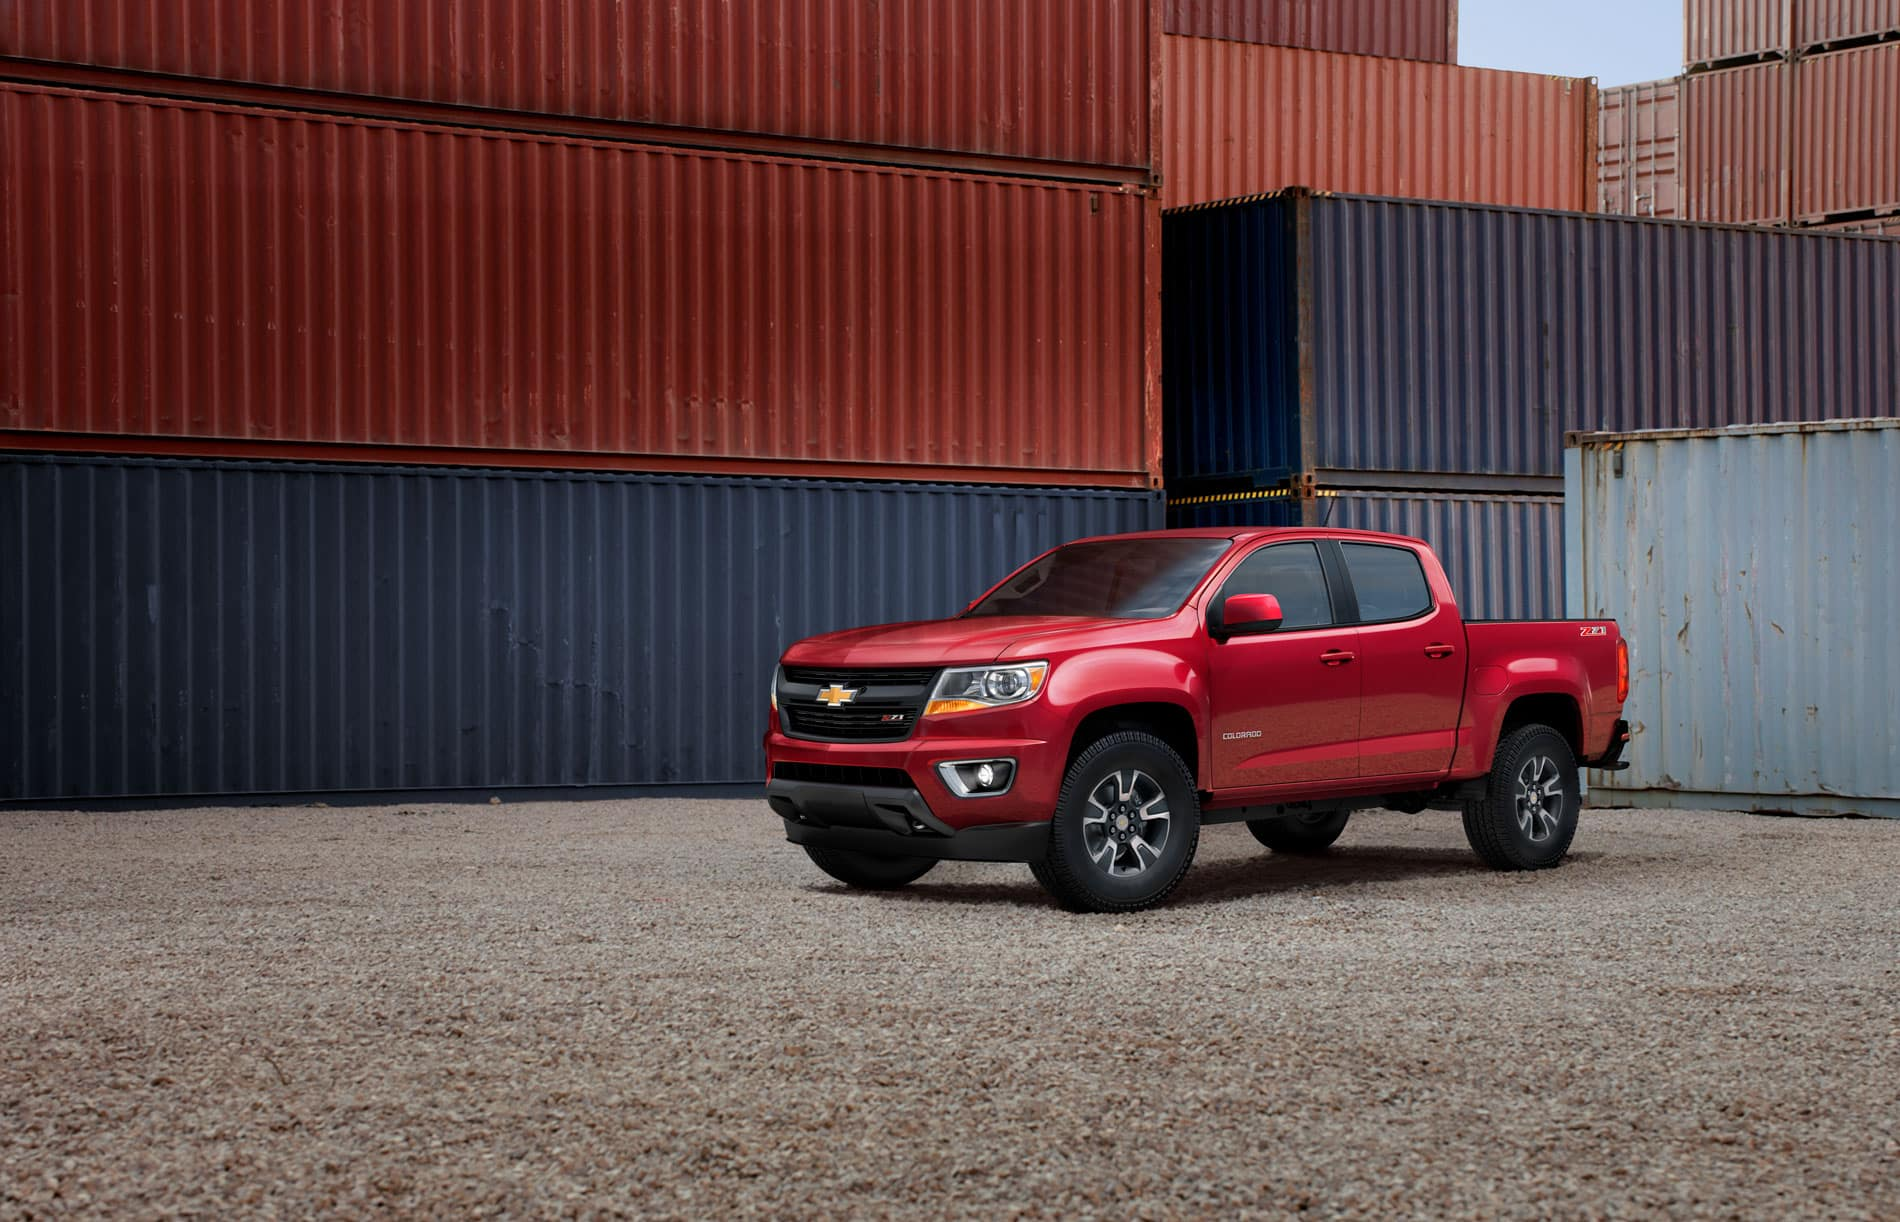 hight resolution of general motors built the chevy canyon and gmc canyon atop the same platform and gave them similar styling but they boast enough stylistic differences to